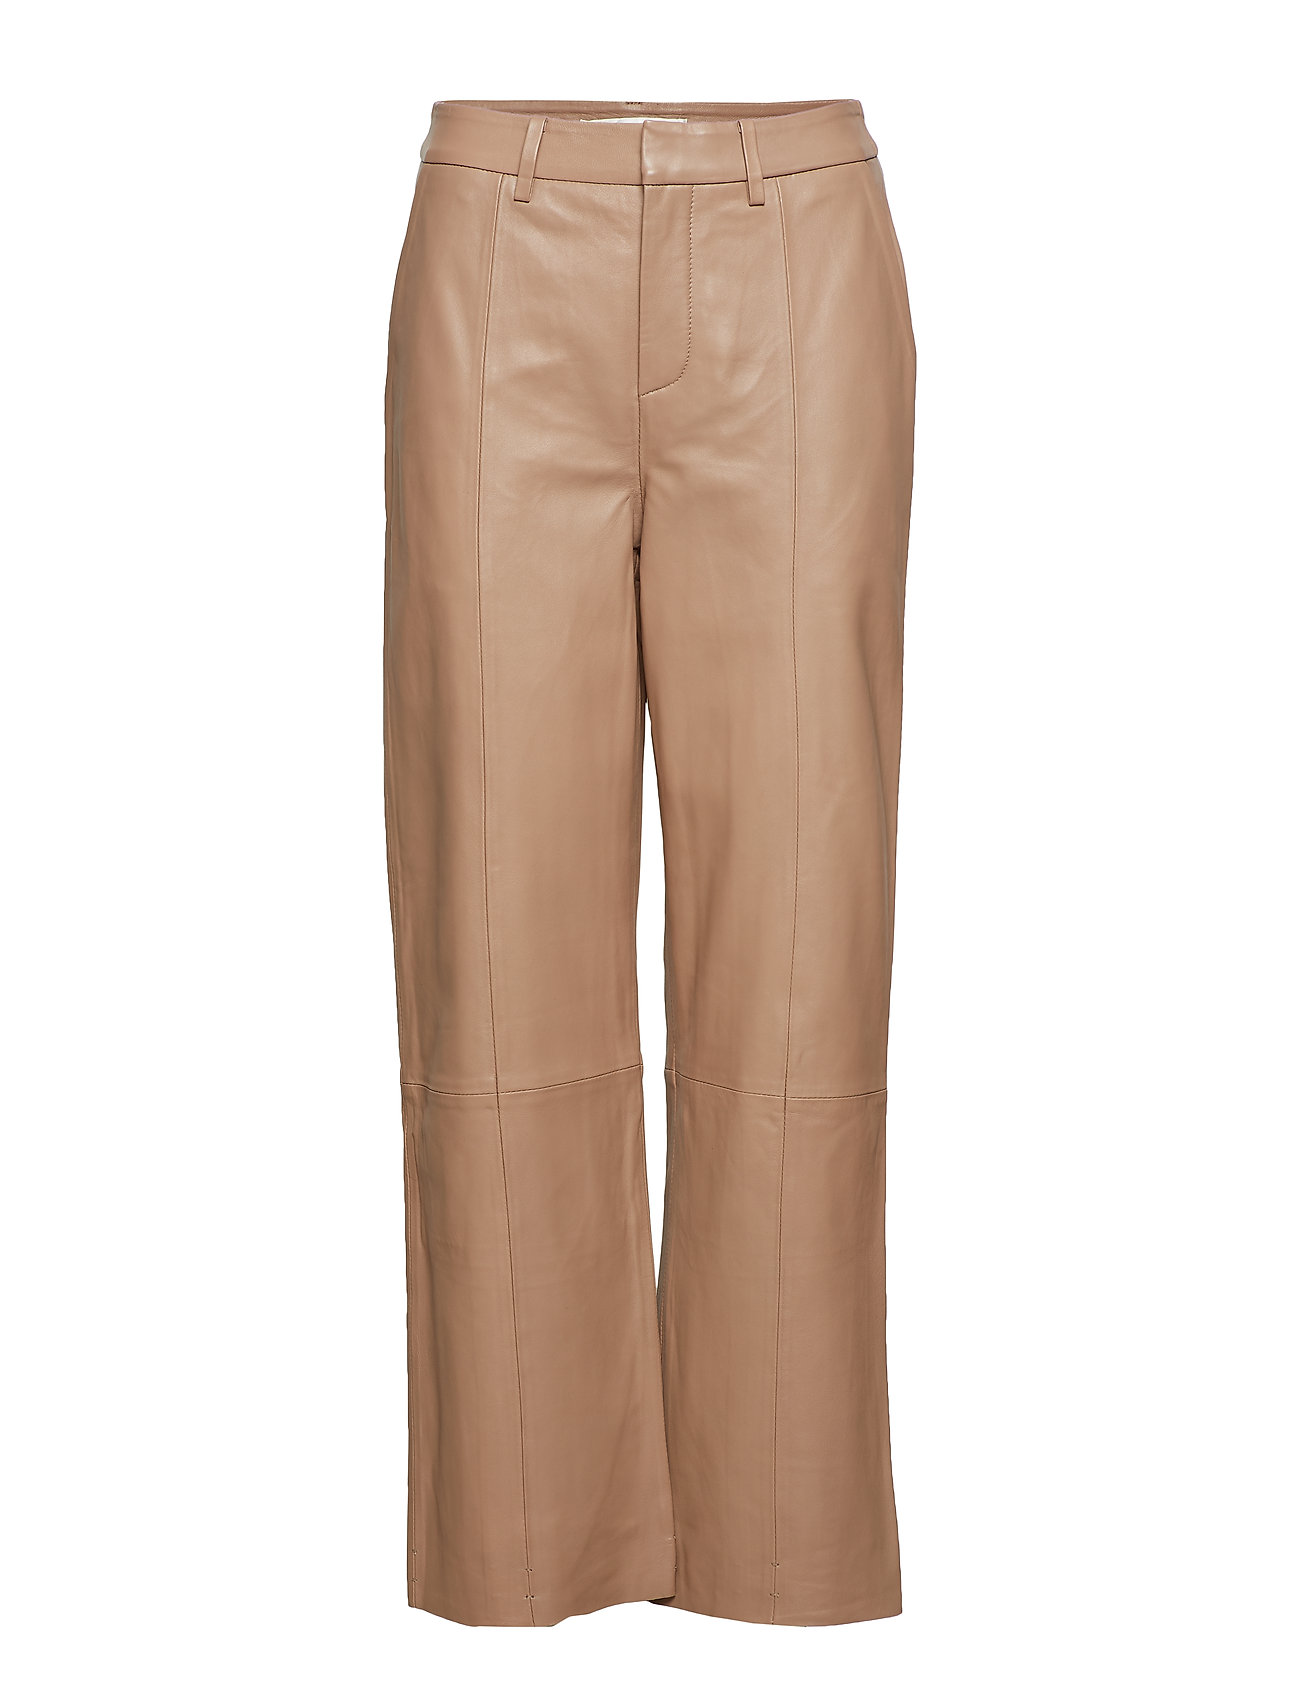 Image of Rose Pants So19 Vide Bukser Beige GESTUZ (3218816925)